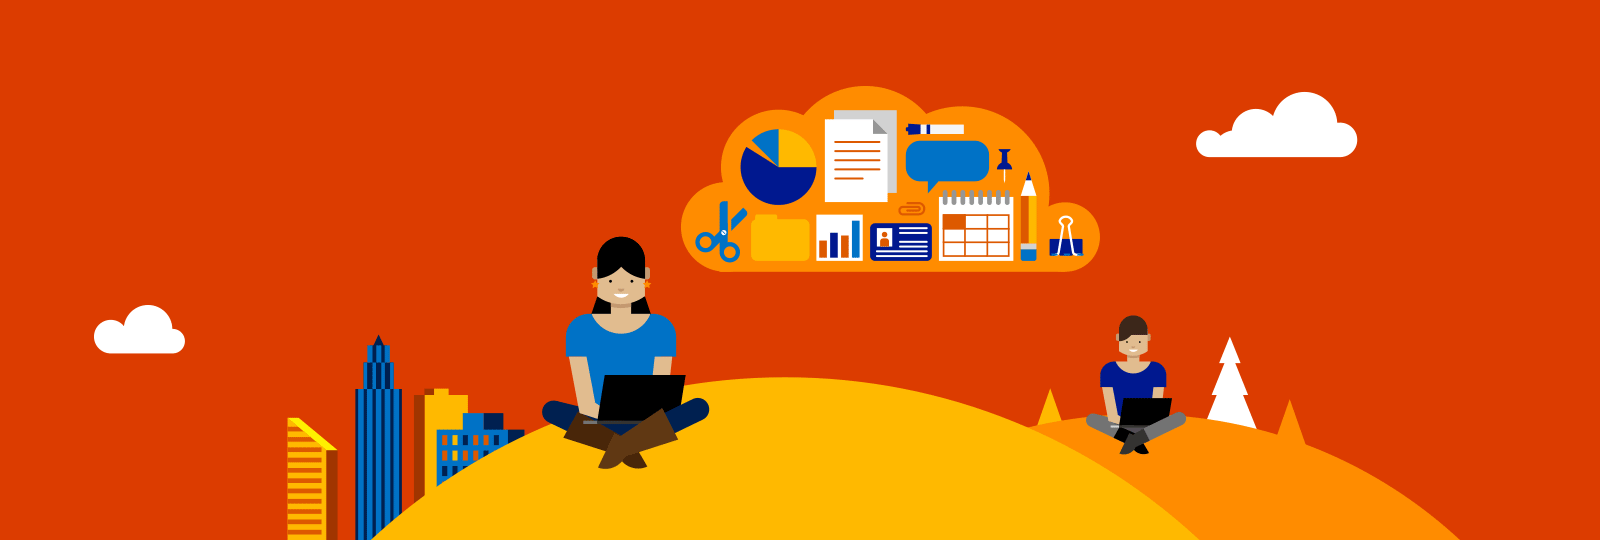 Office 365 Home Premium ti segue. Acquistalo subito.